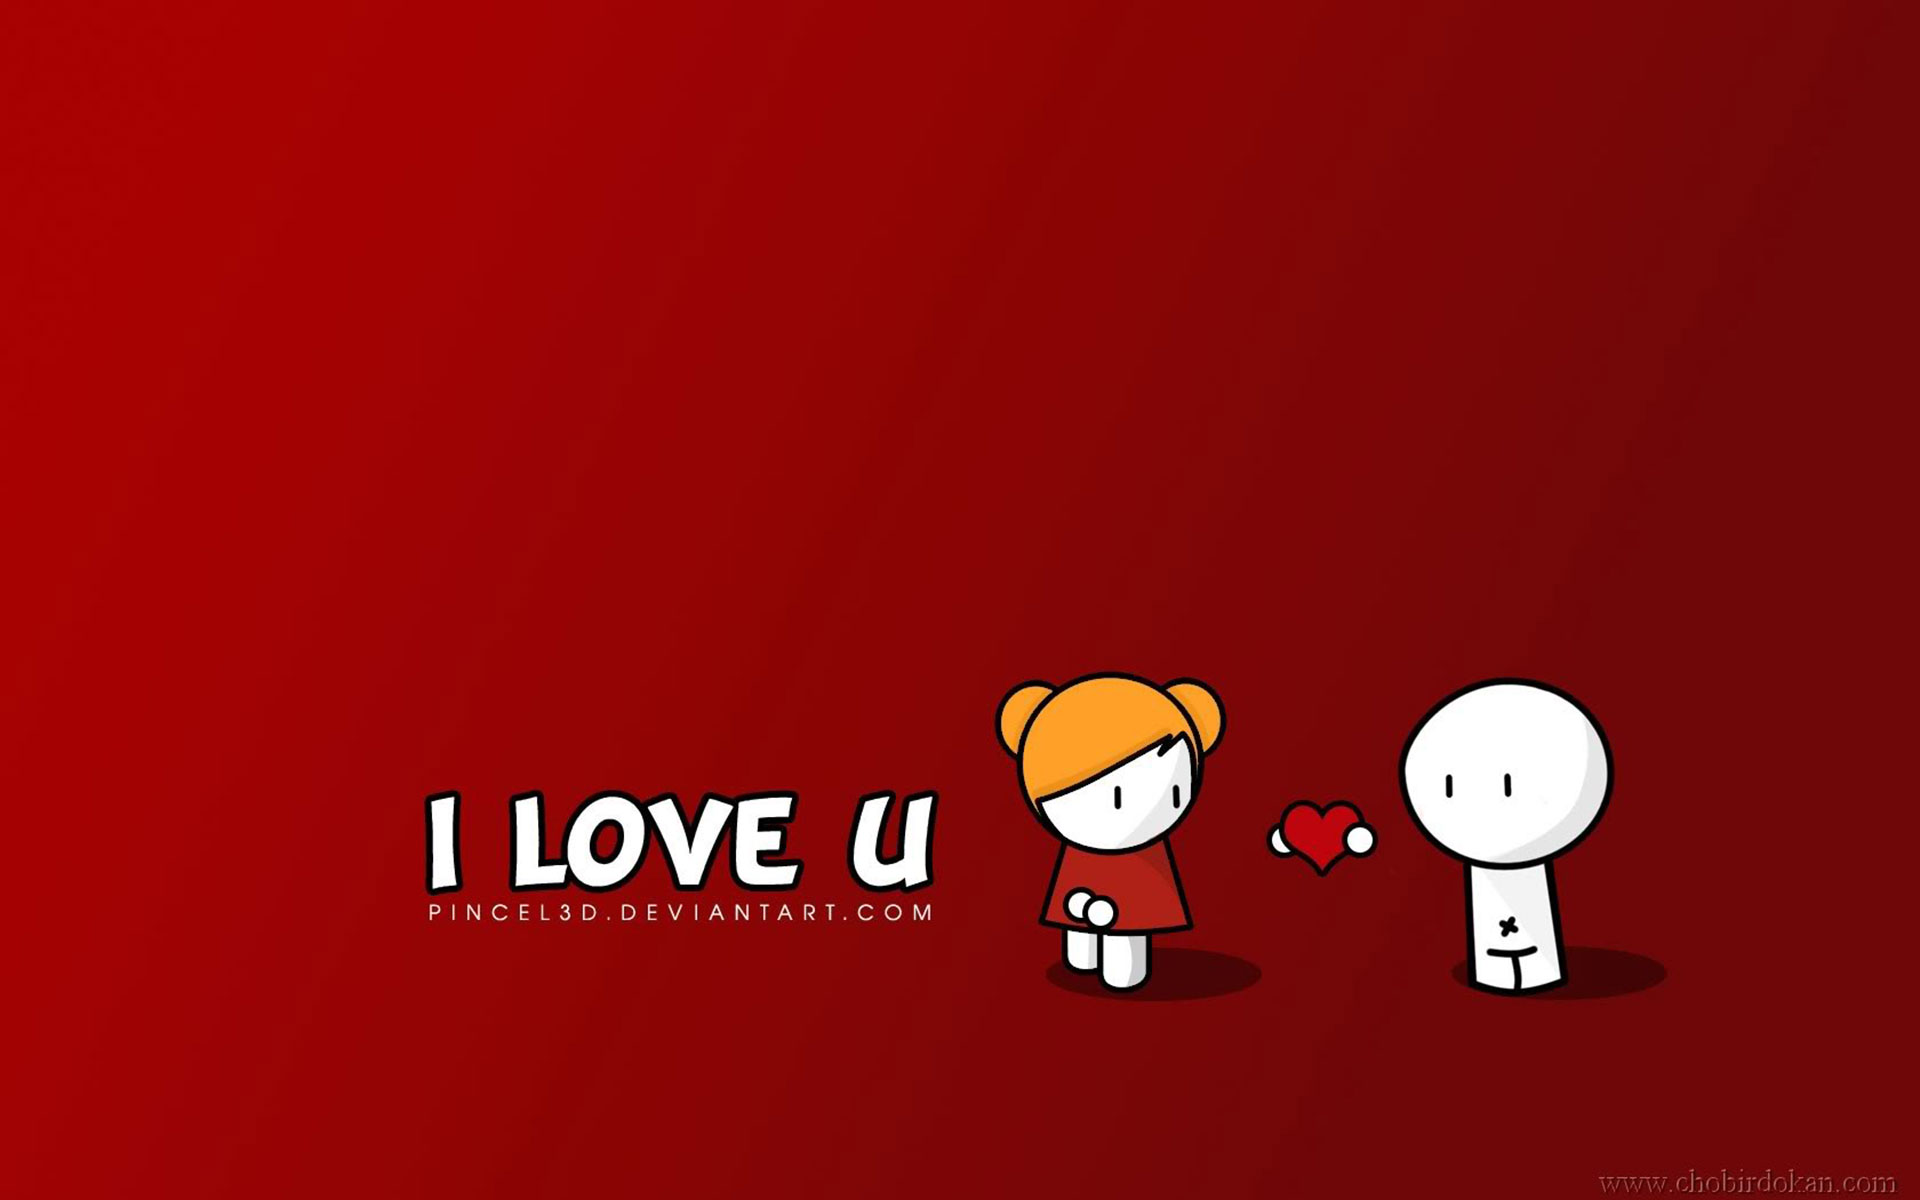 Love U Wallpapers Hd : 25+ Free HD I Love You Wallpapers cute I Love You Images